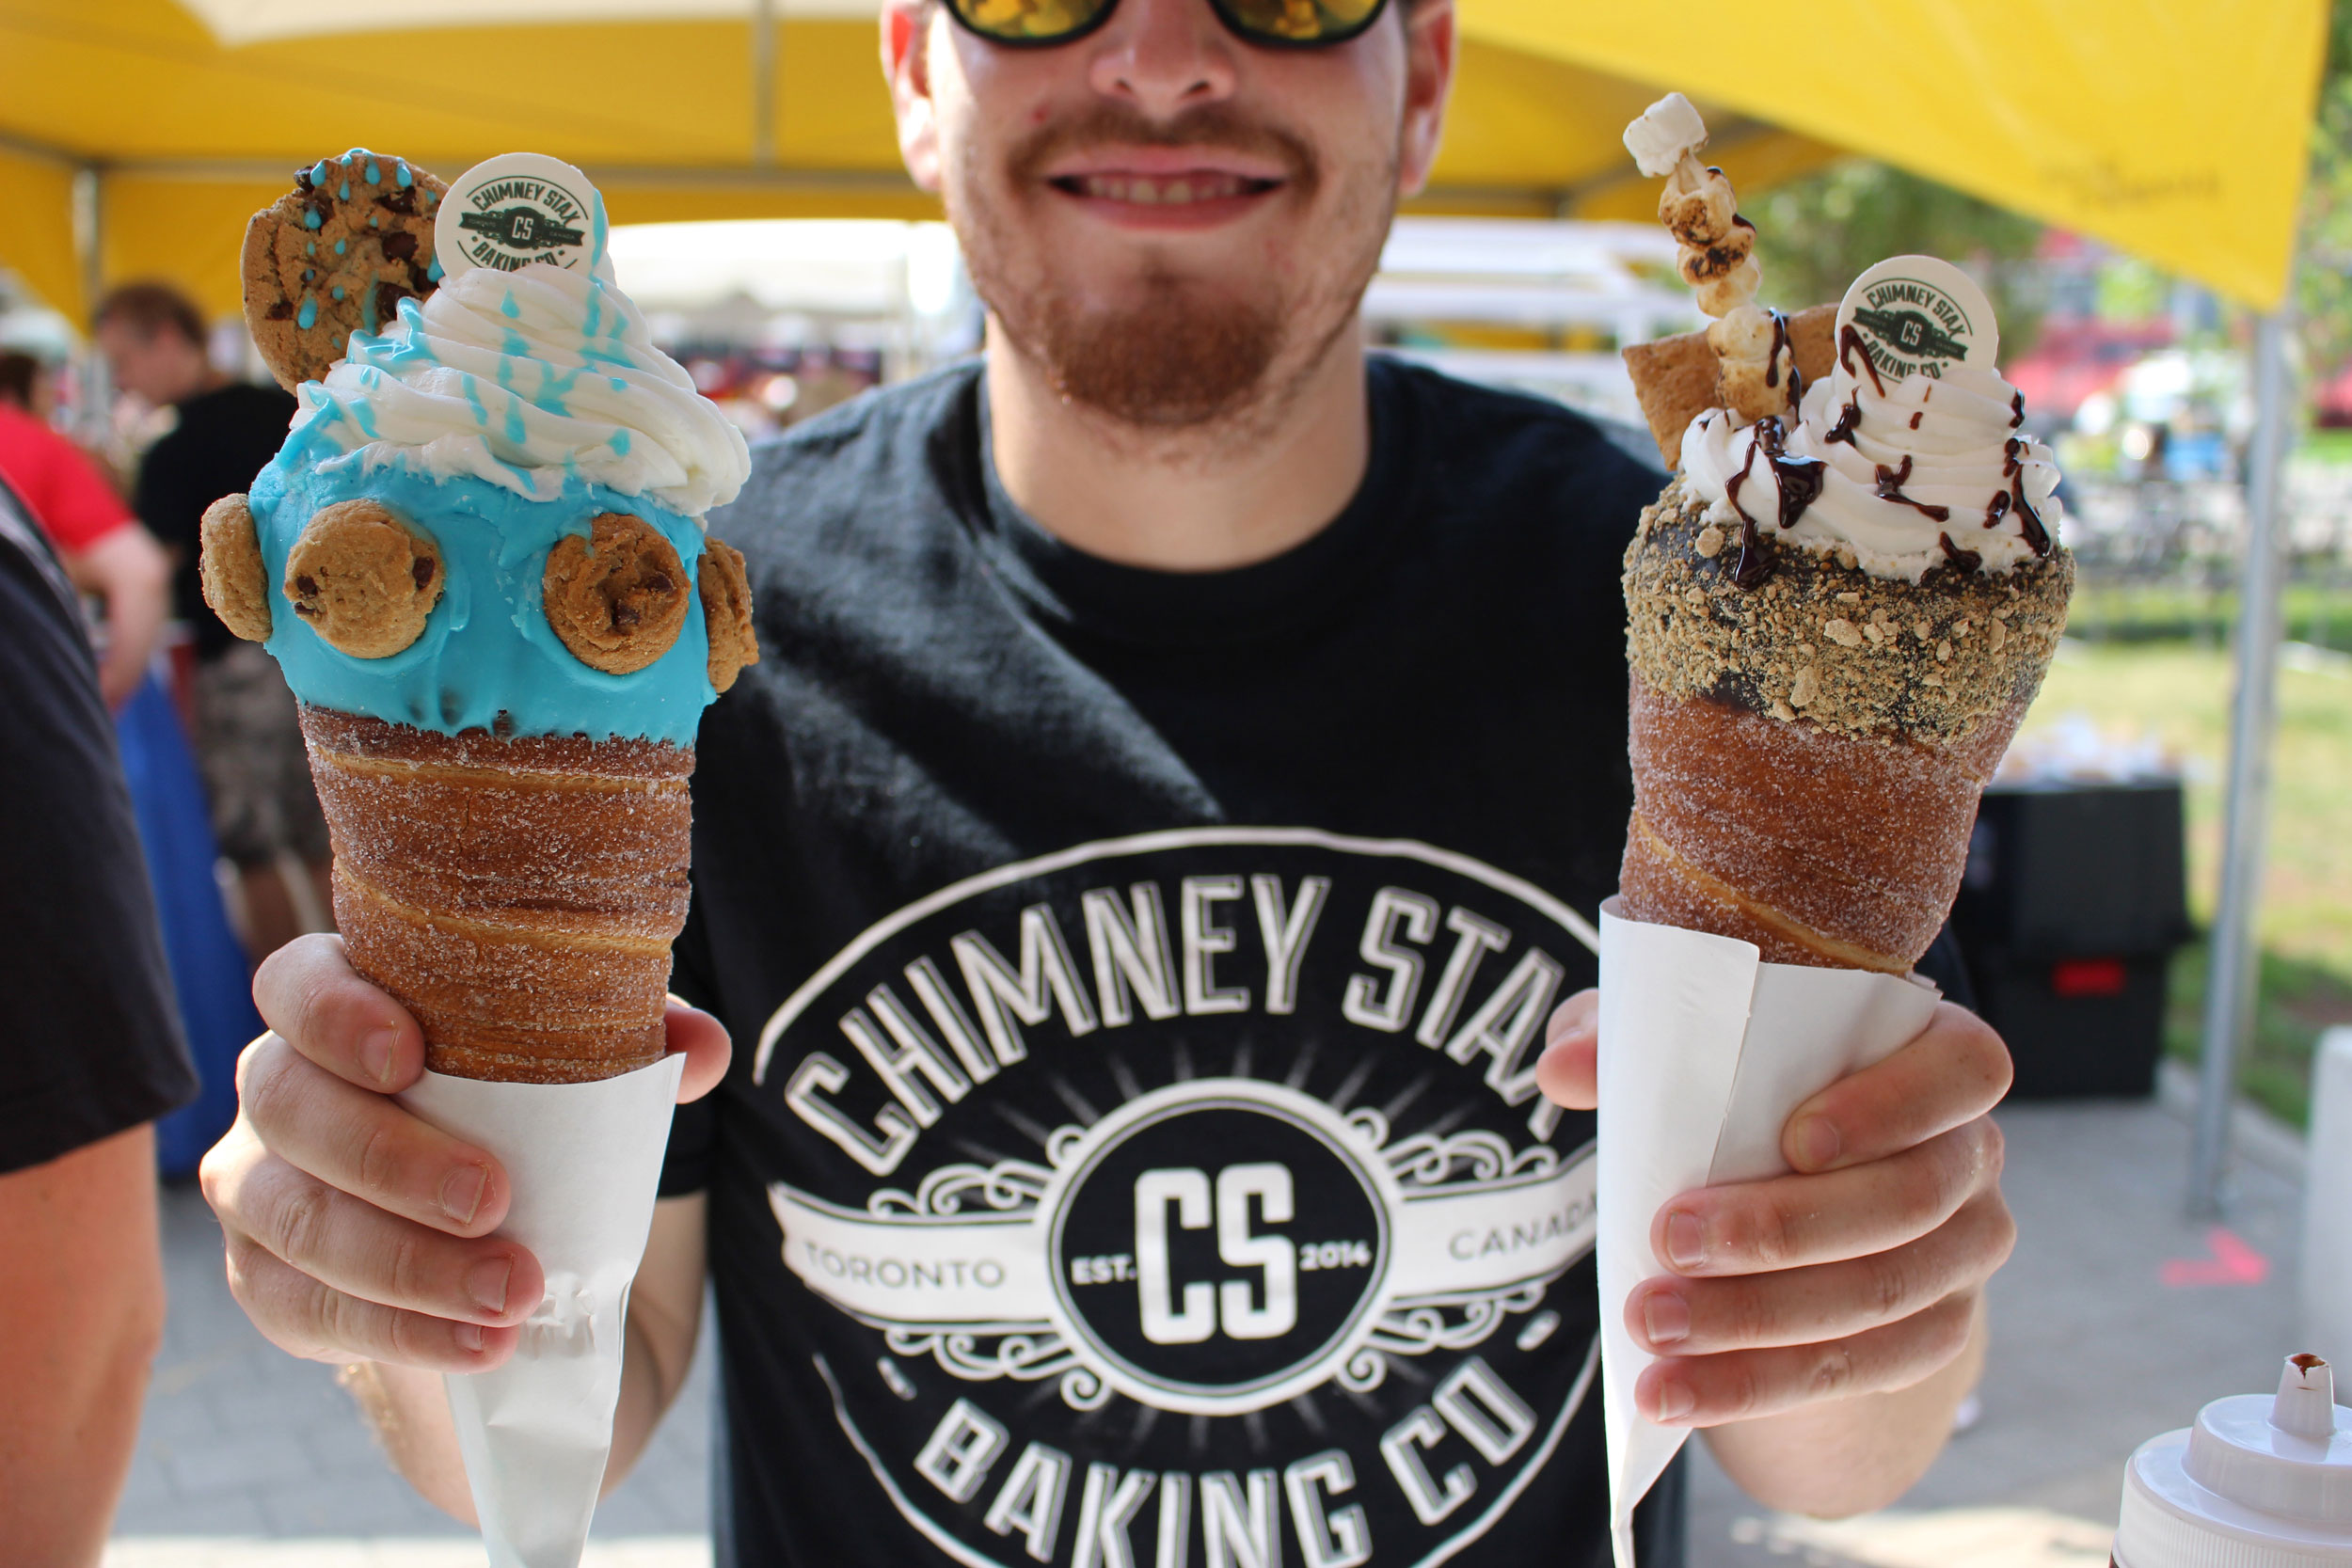 The food offerings at the Chimney Stax food truck at the CNE. Photo credit: CNE